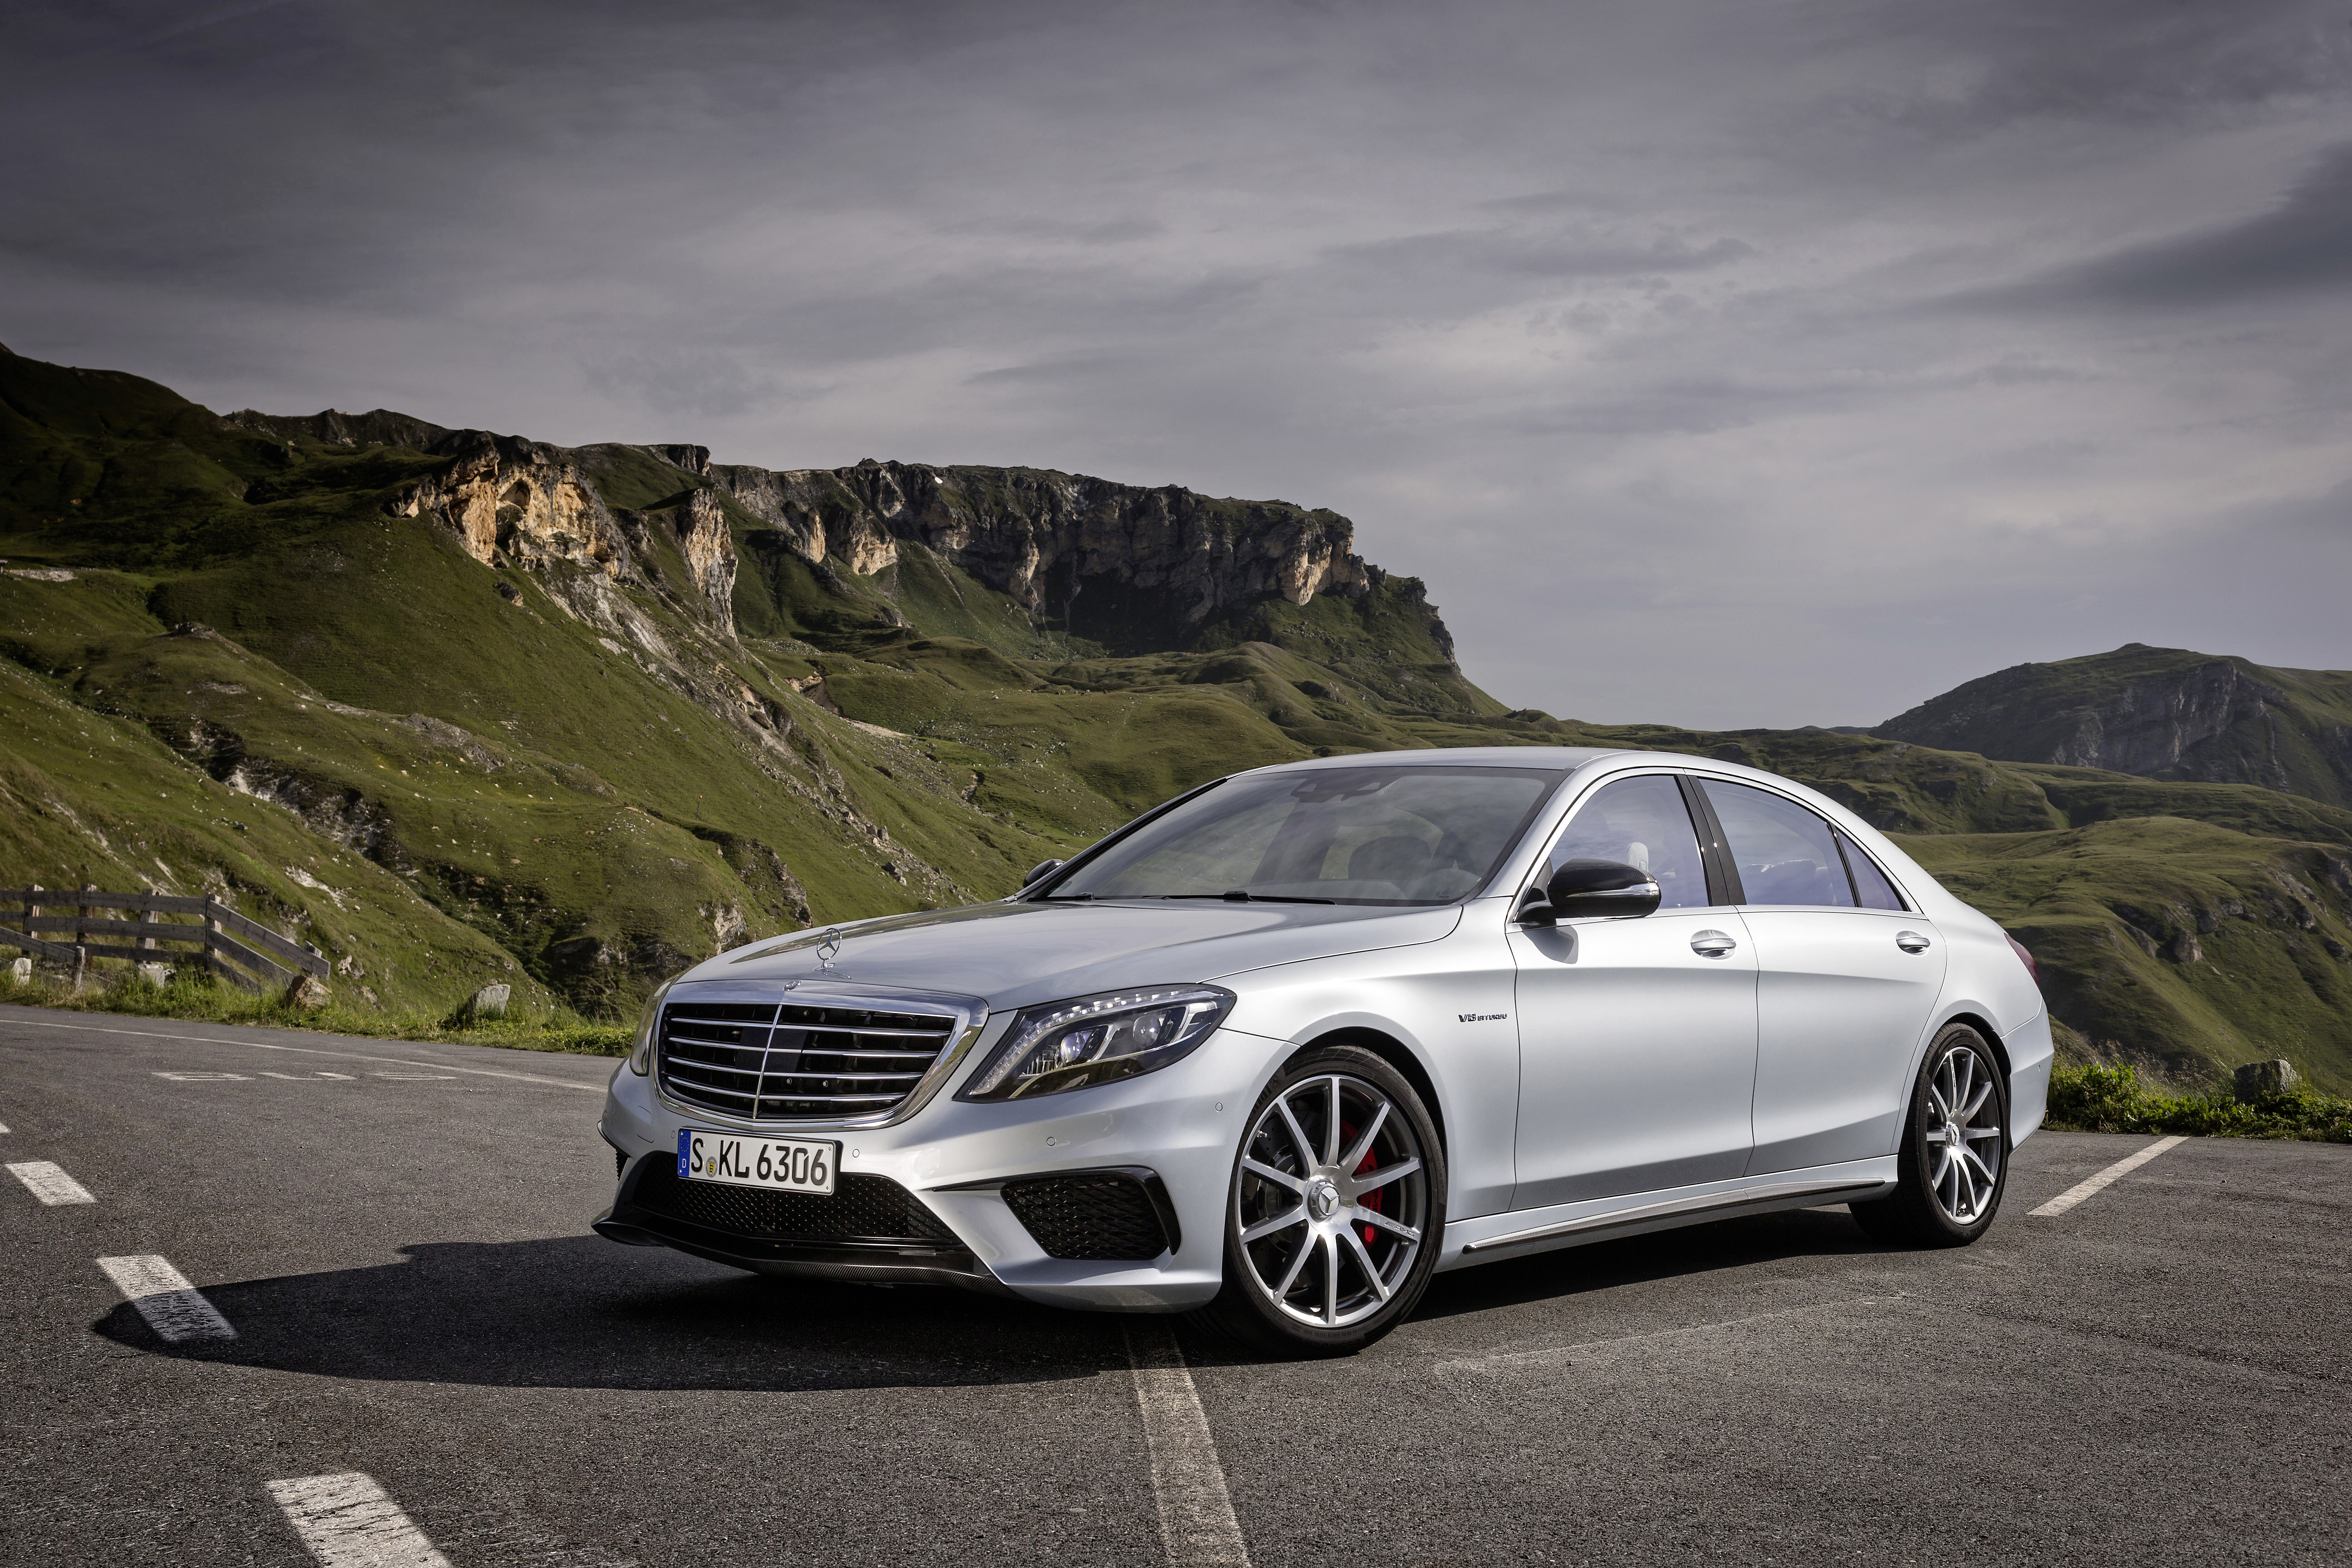 2014 mercedes benz s63 amg the world s best car gaywheels for Mercedes benz s63 2014